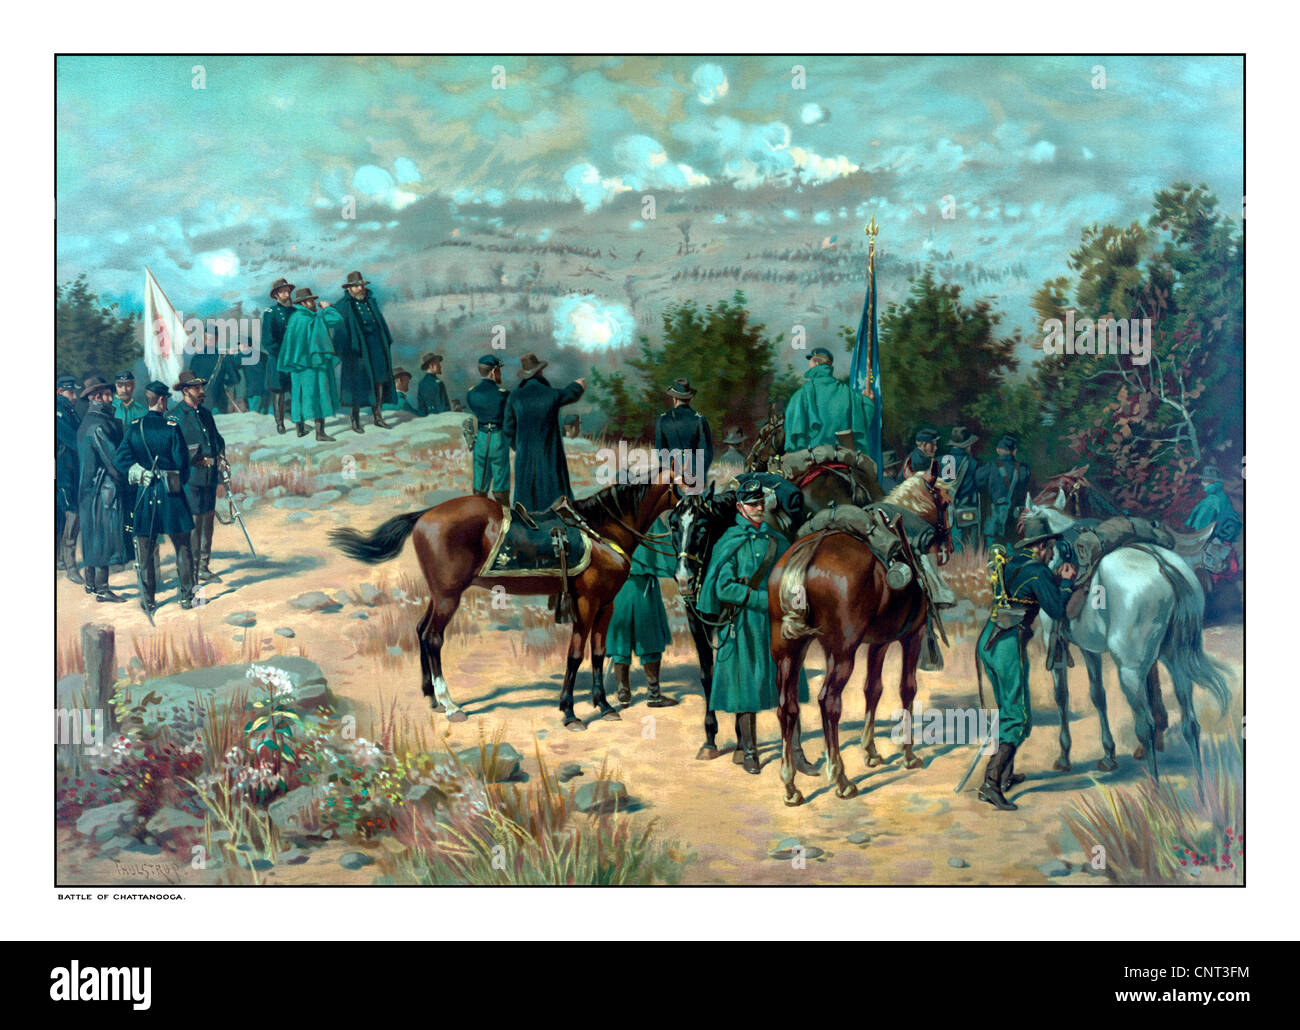 Vintage Civil War poster of the Battle of Missionary Ridge which took place during the Chattanooga Campaign. - Stock Image